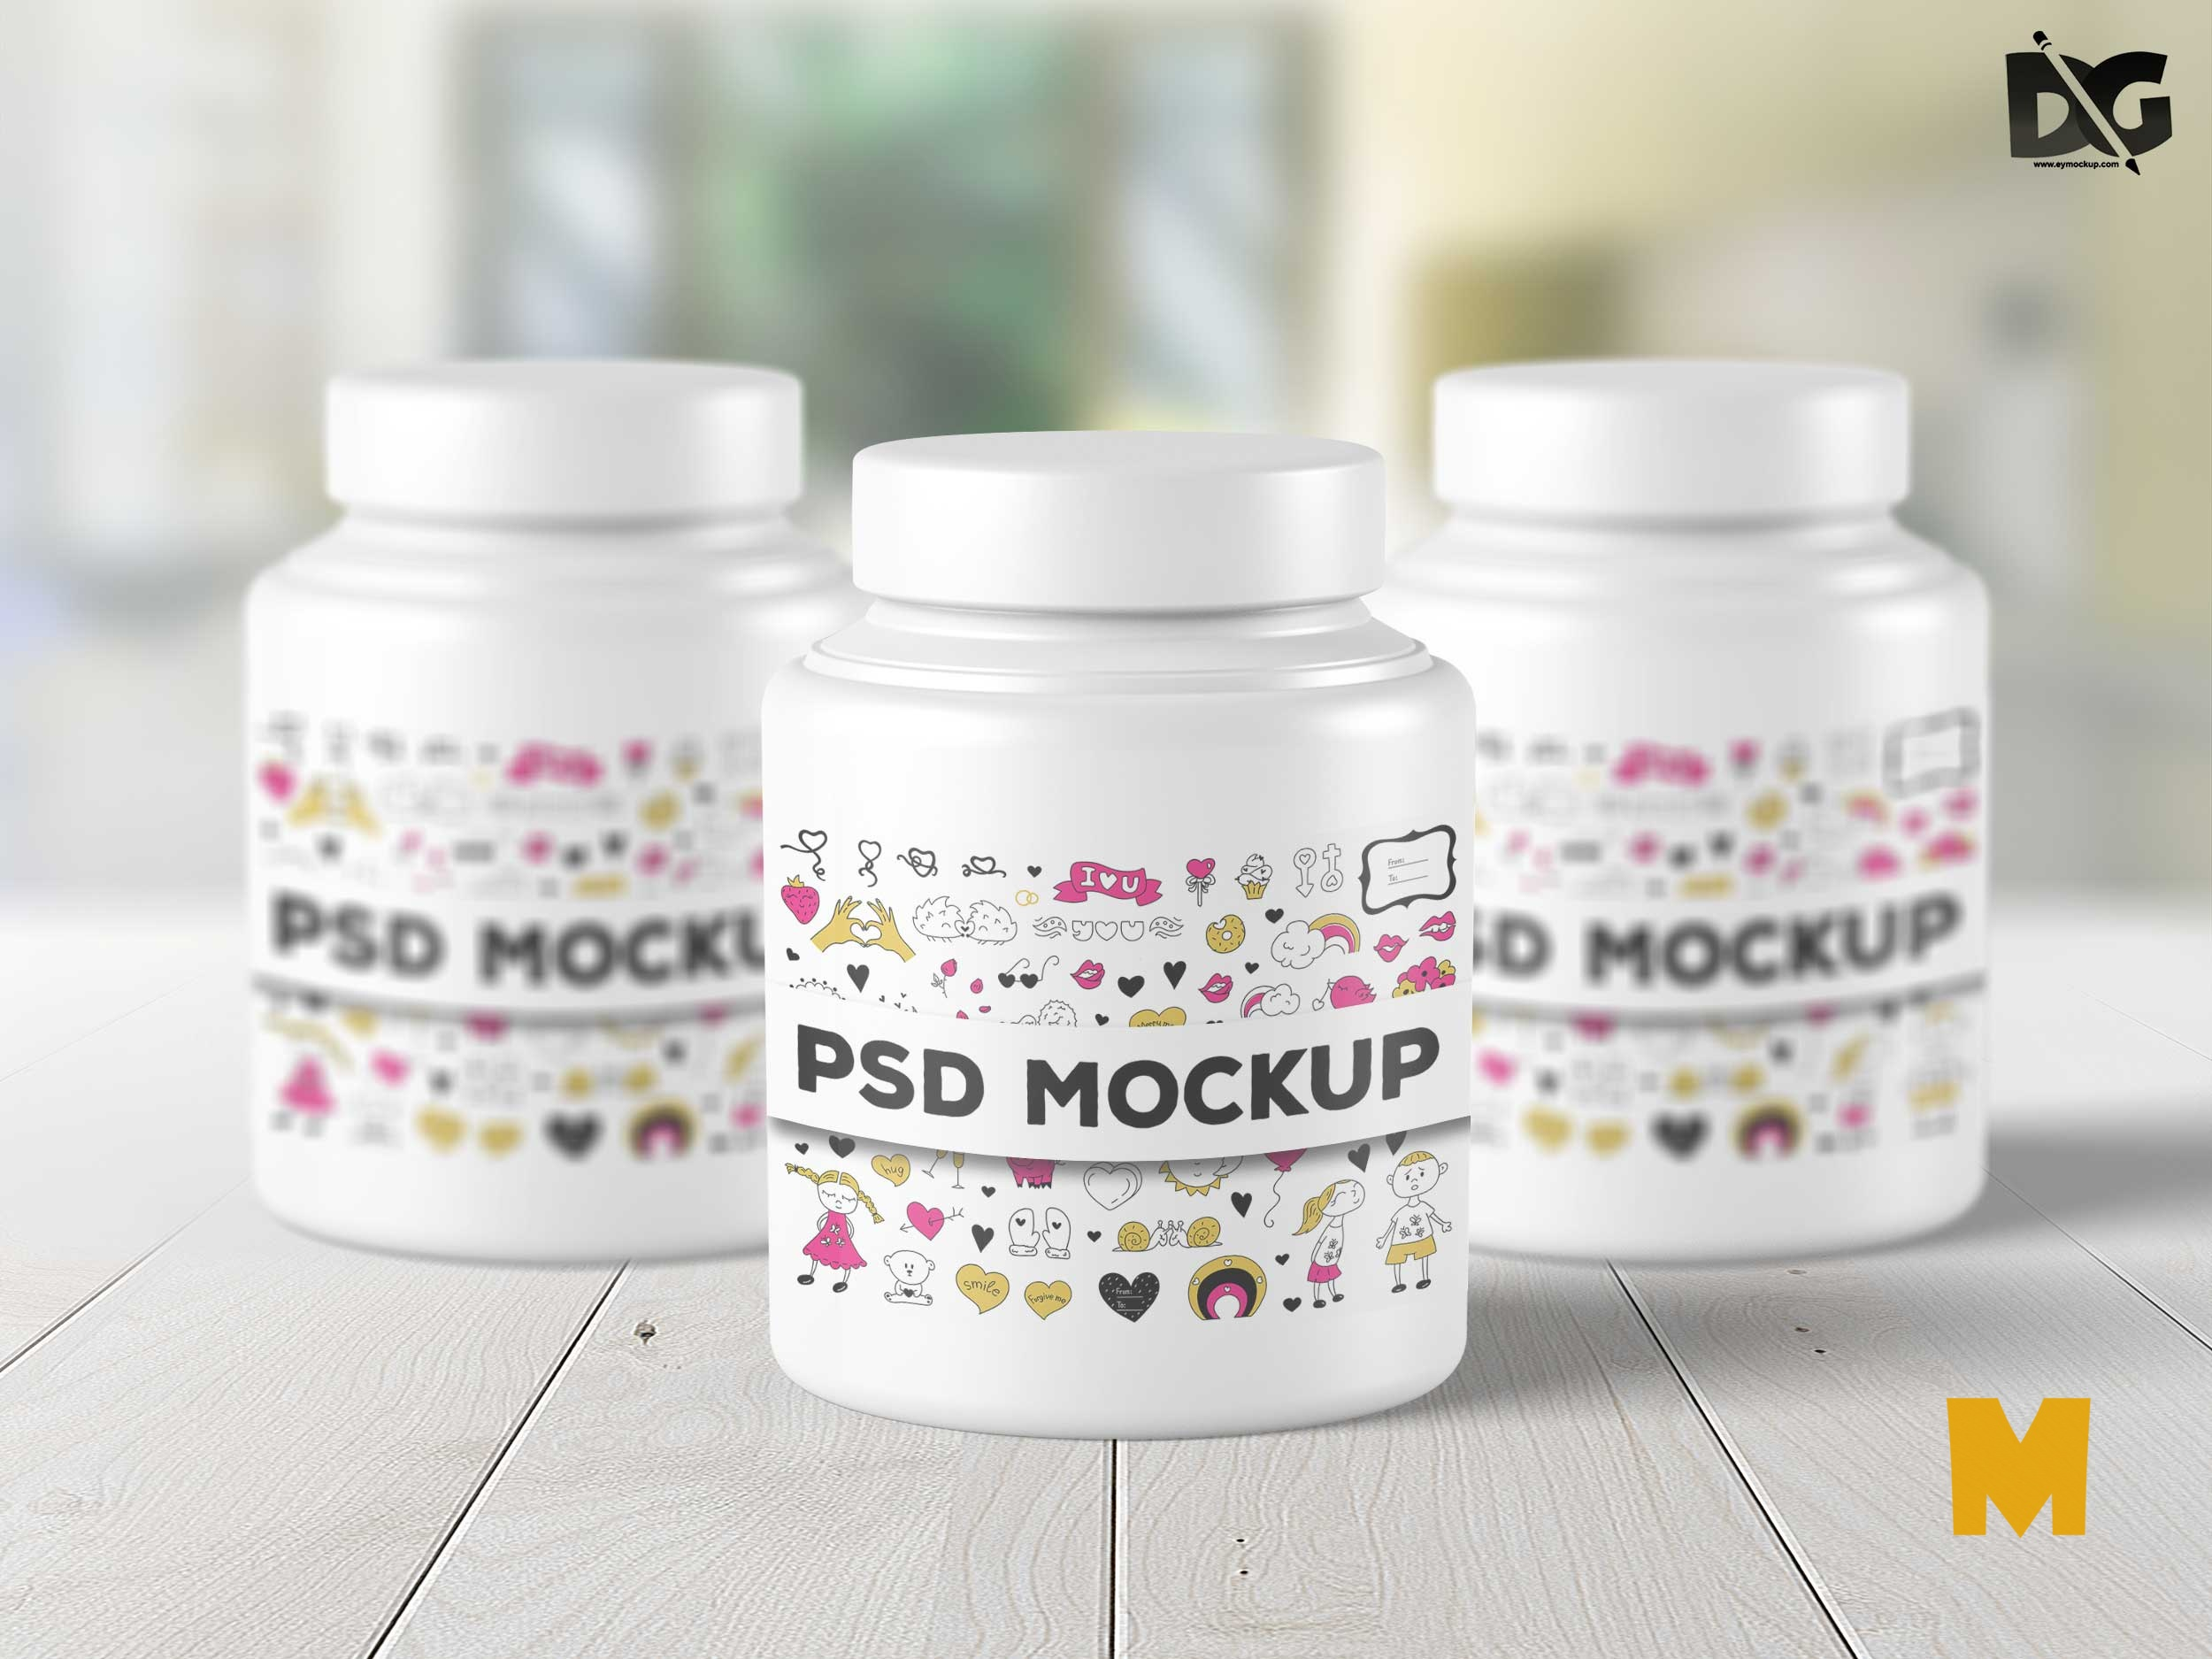 Free PSD Product Bottles Design Mockup Presentation